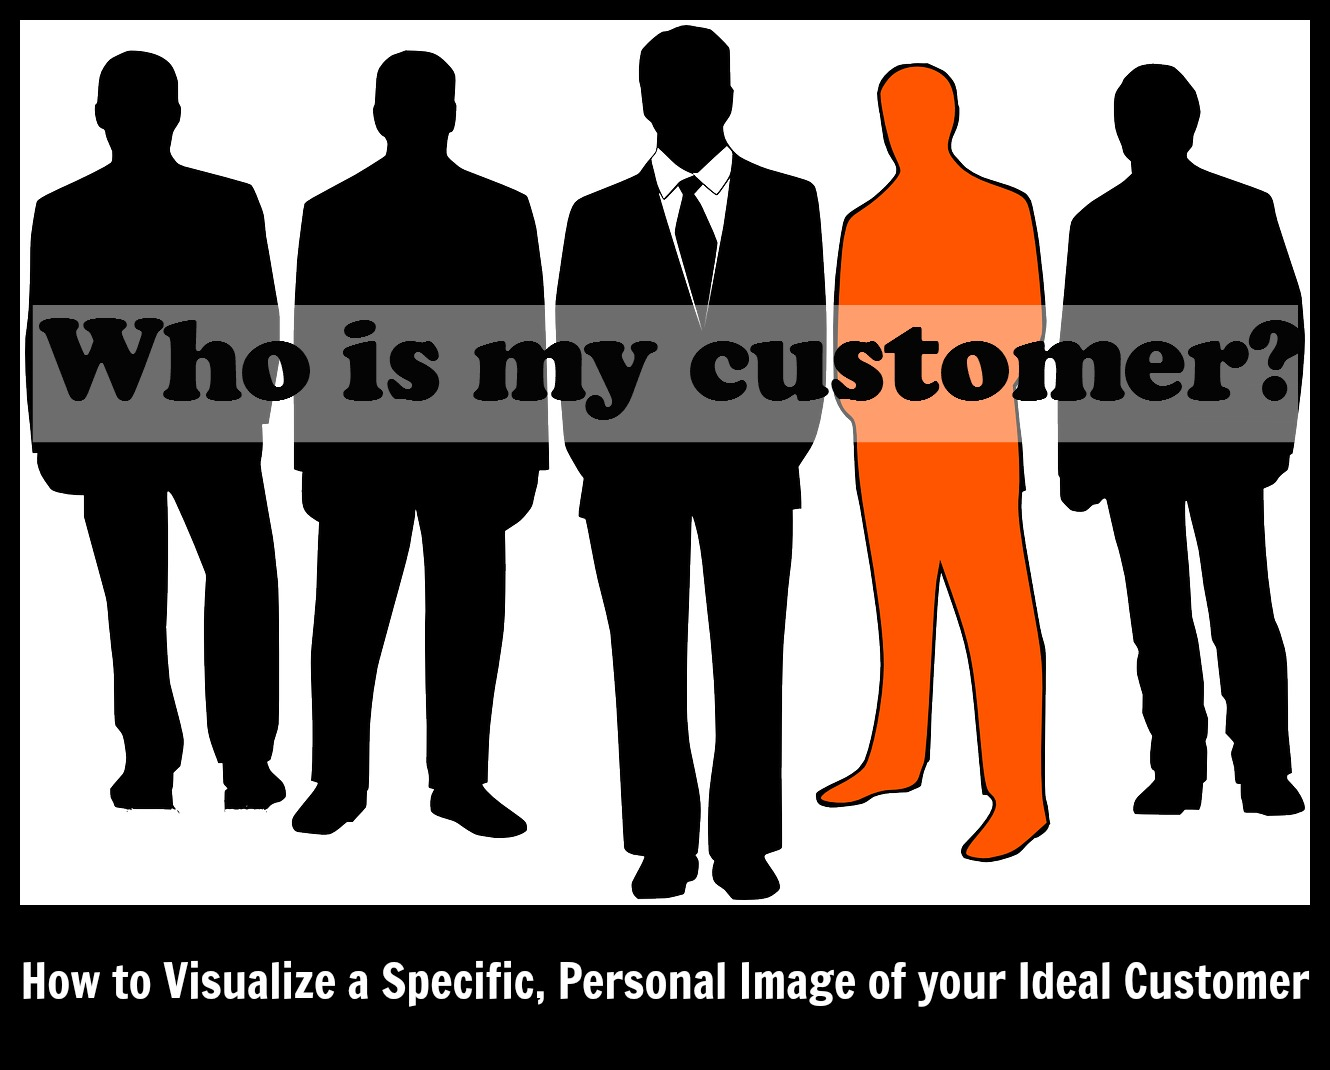 Creating a personal image of your ideal customer